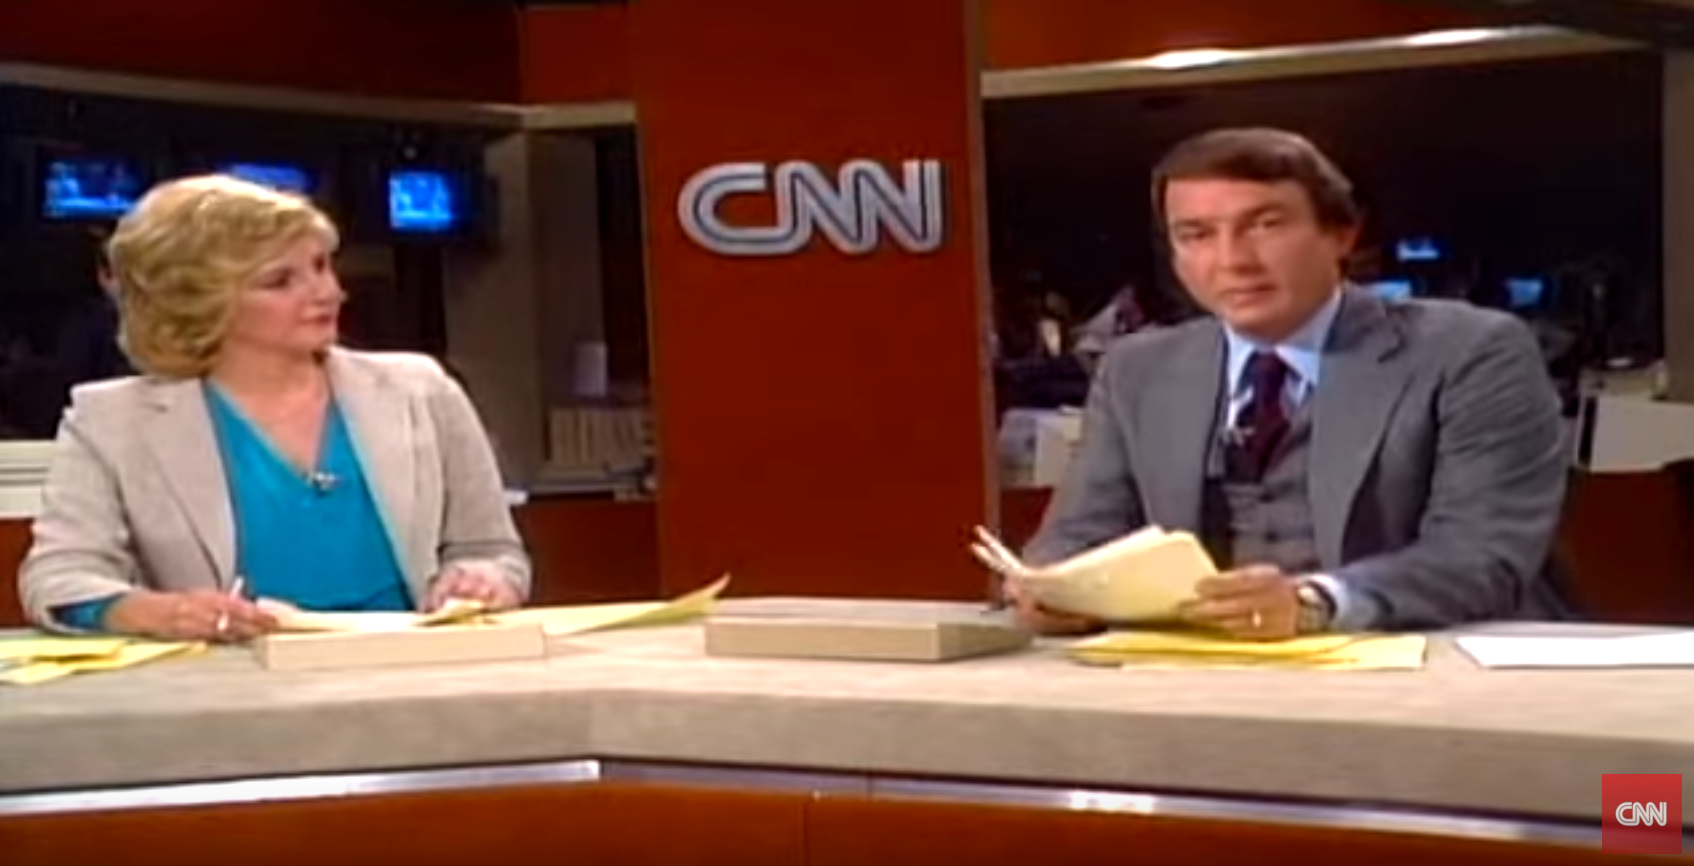 CNN first broadcast.